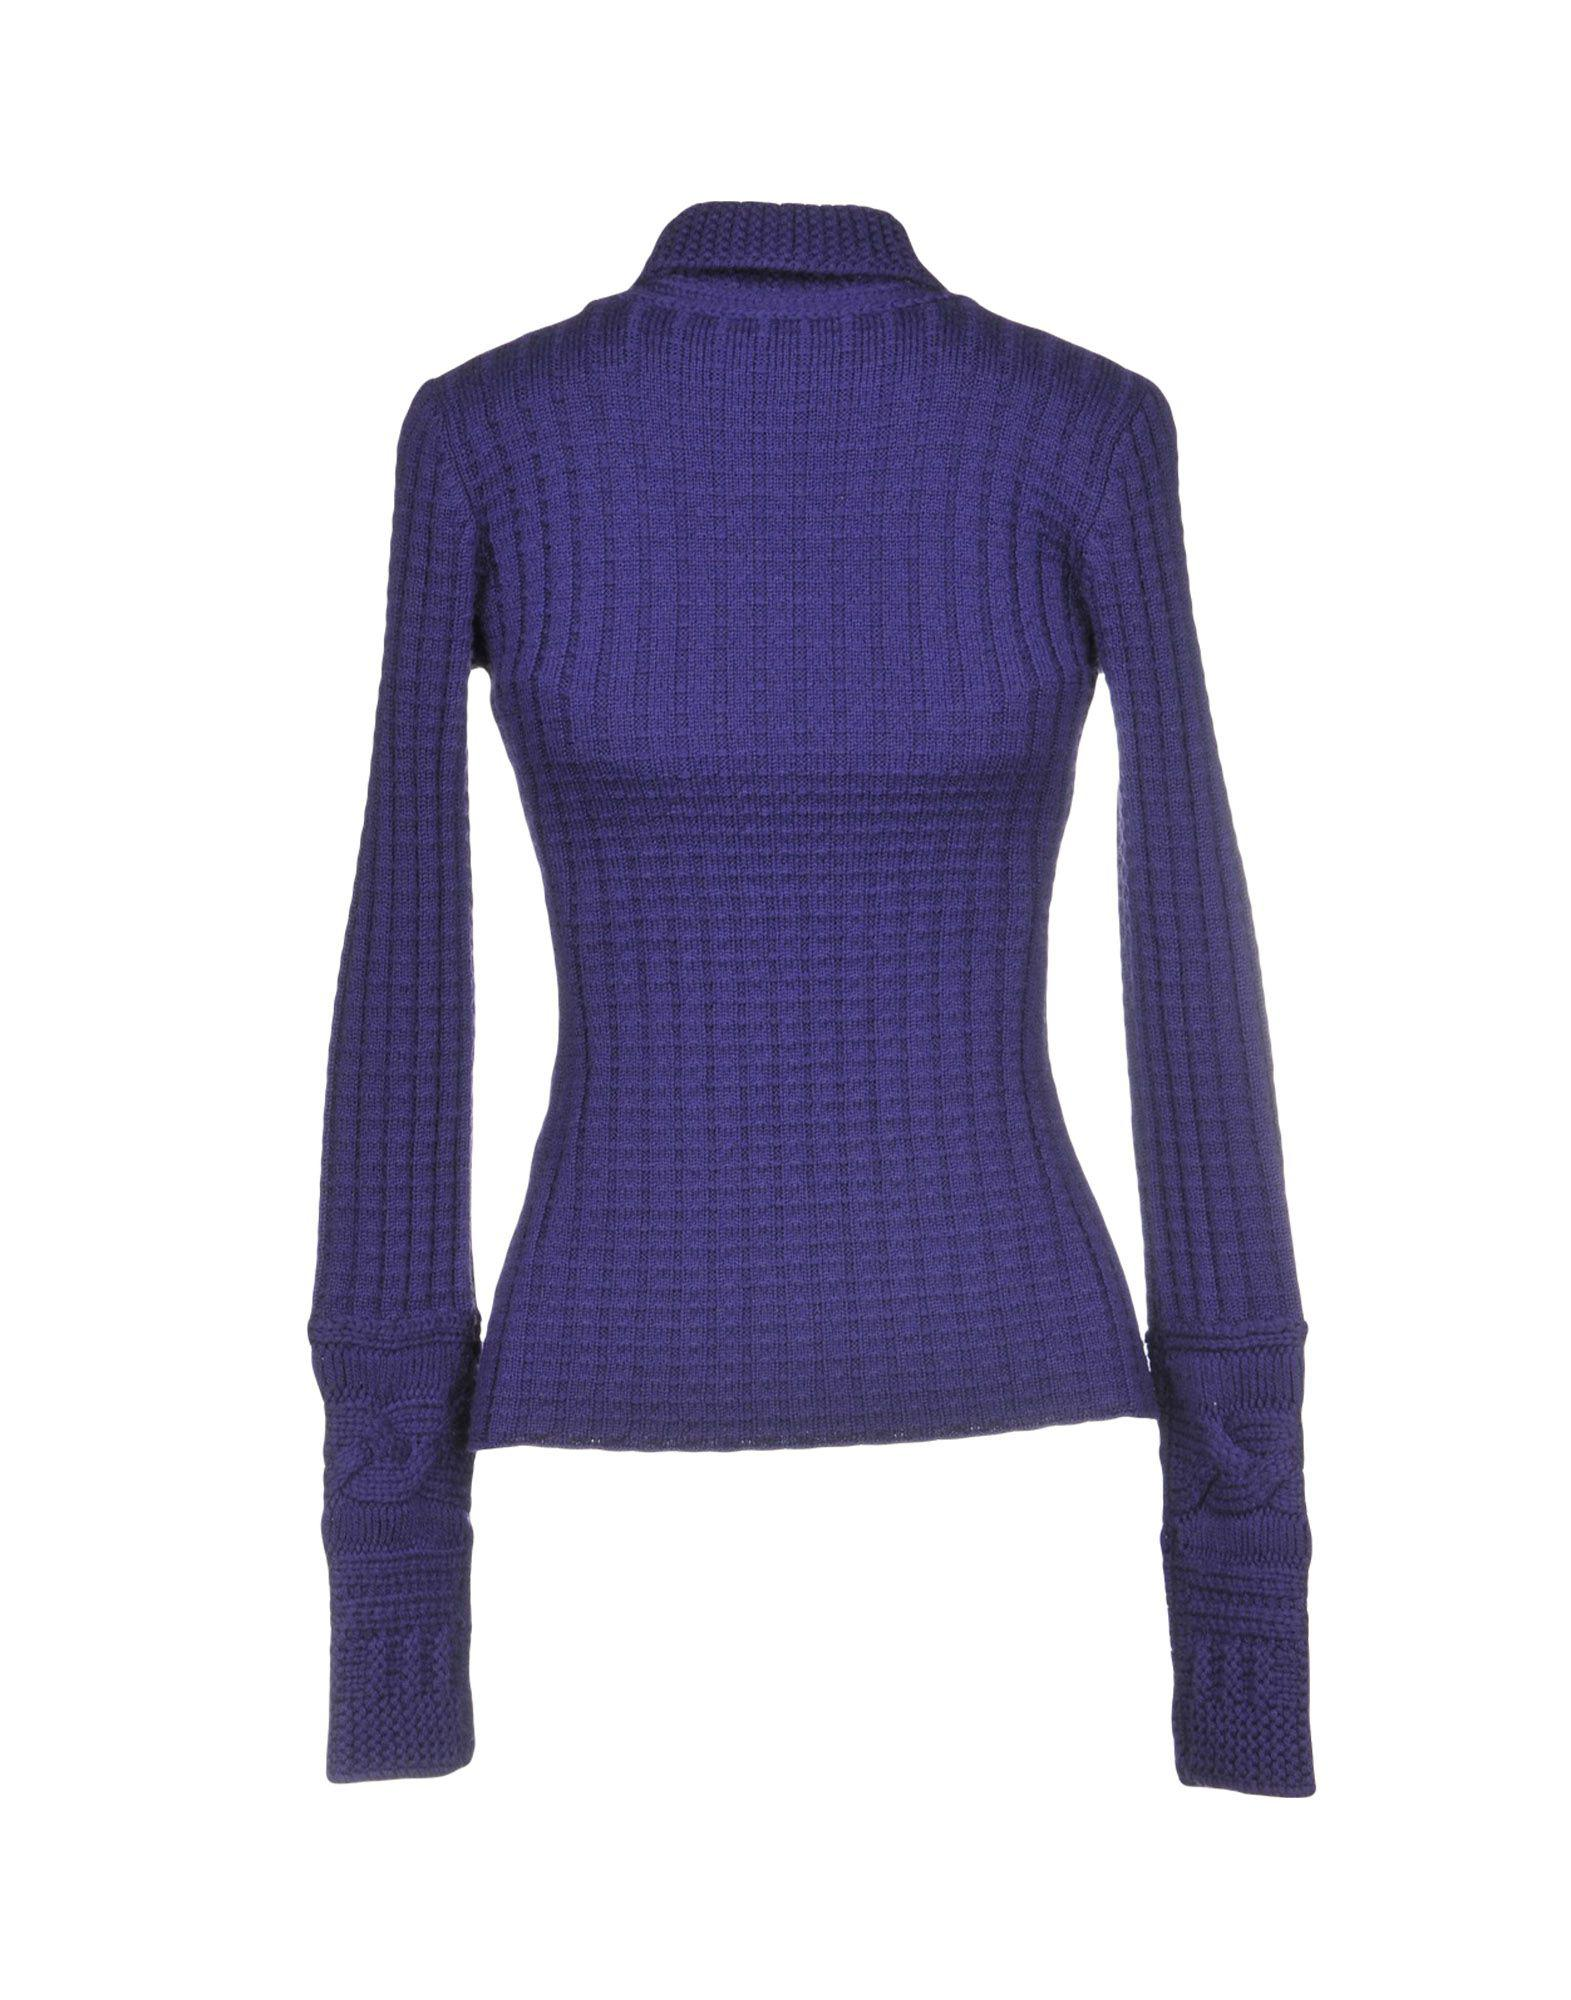 Versace Jeans Couture Wool Turtleneck in Purple